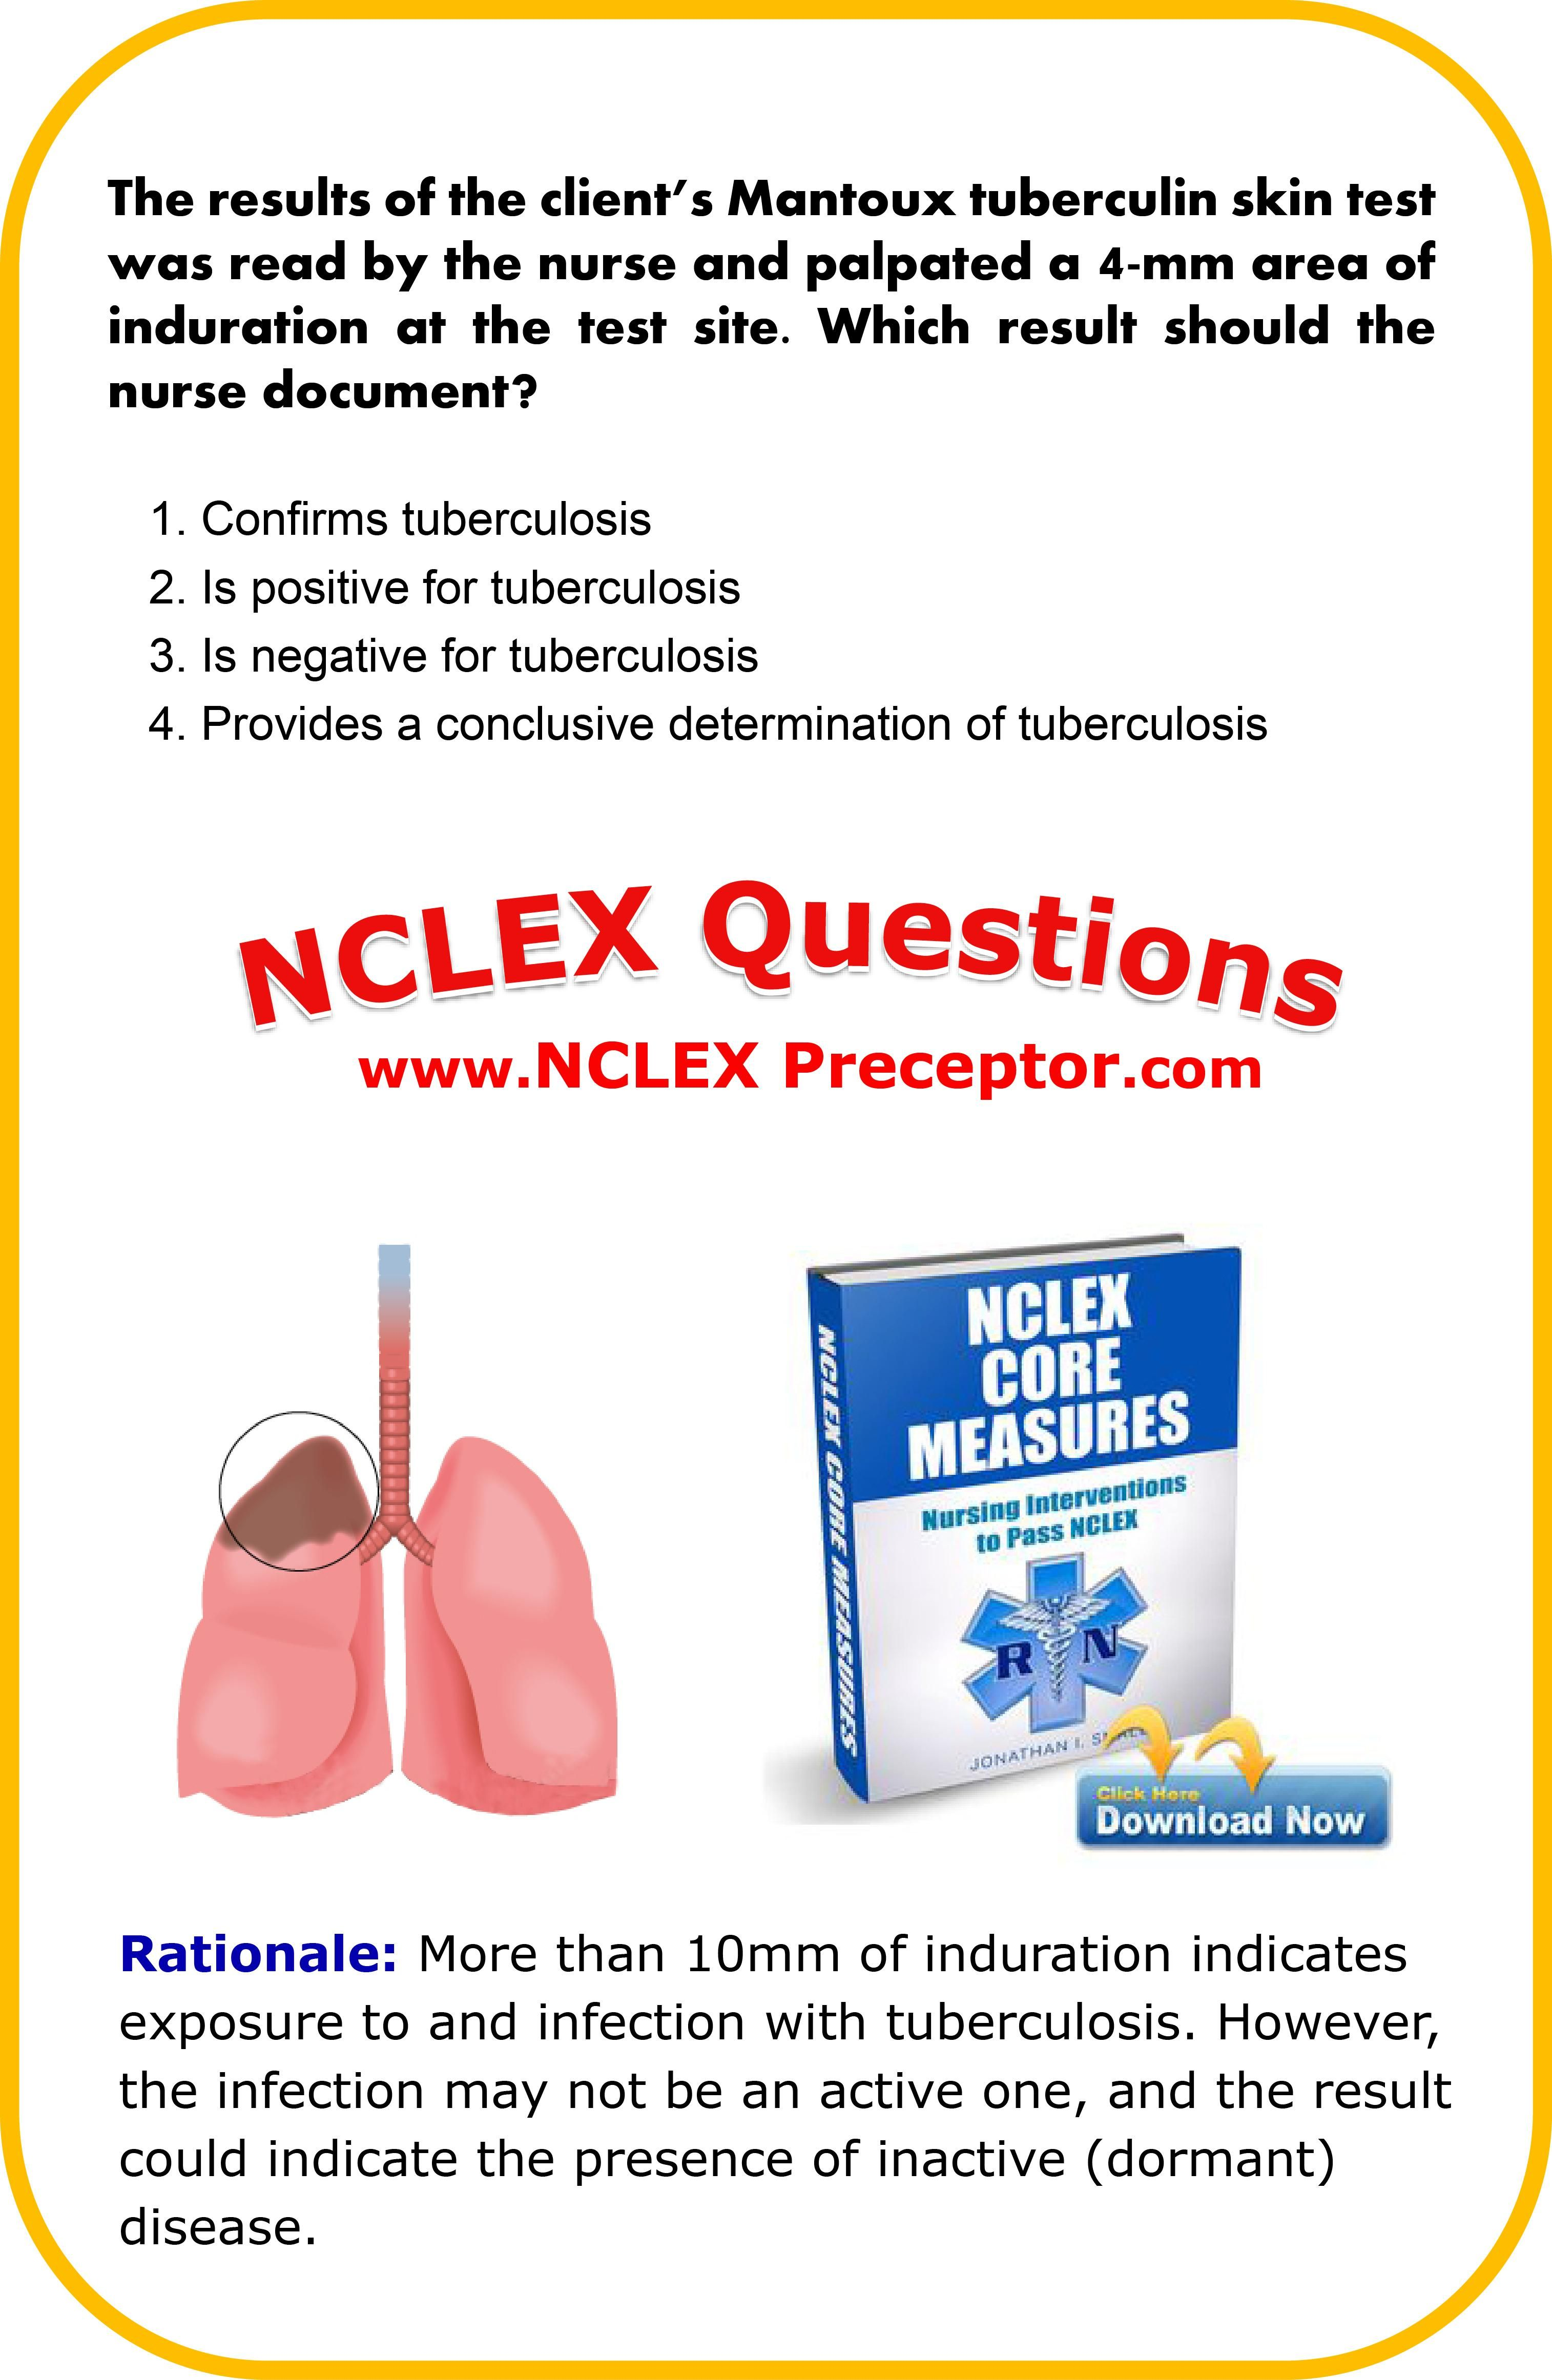 Learn nursing NCLEX interventions. Great place to get FREE practice NCLEX questions for student nurses. www.nclexpreceptor.com